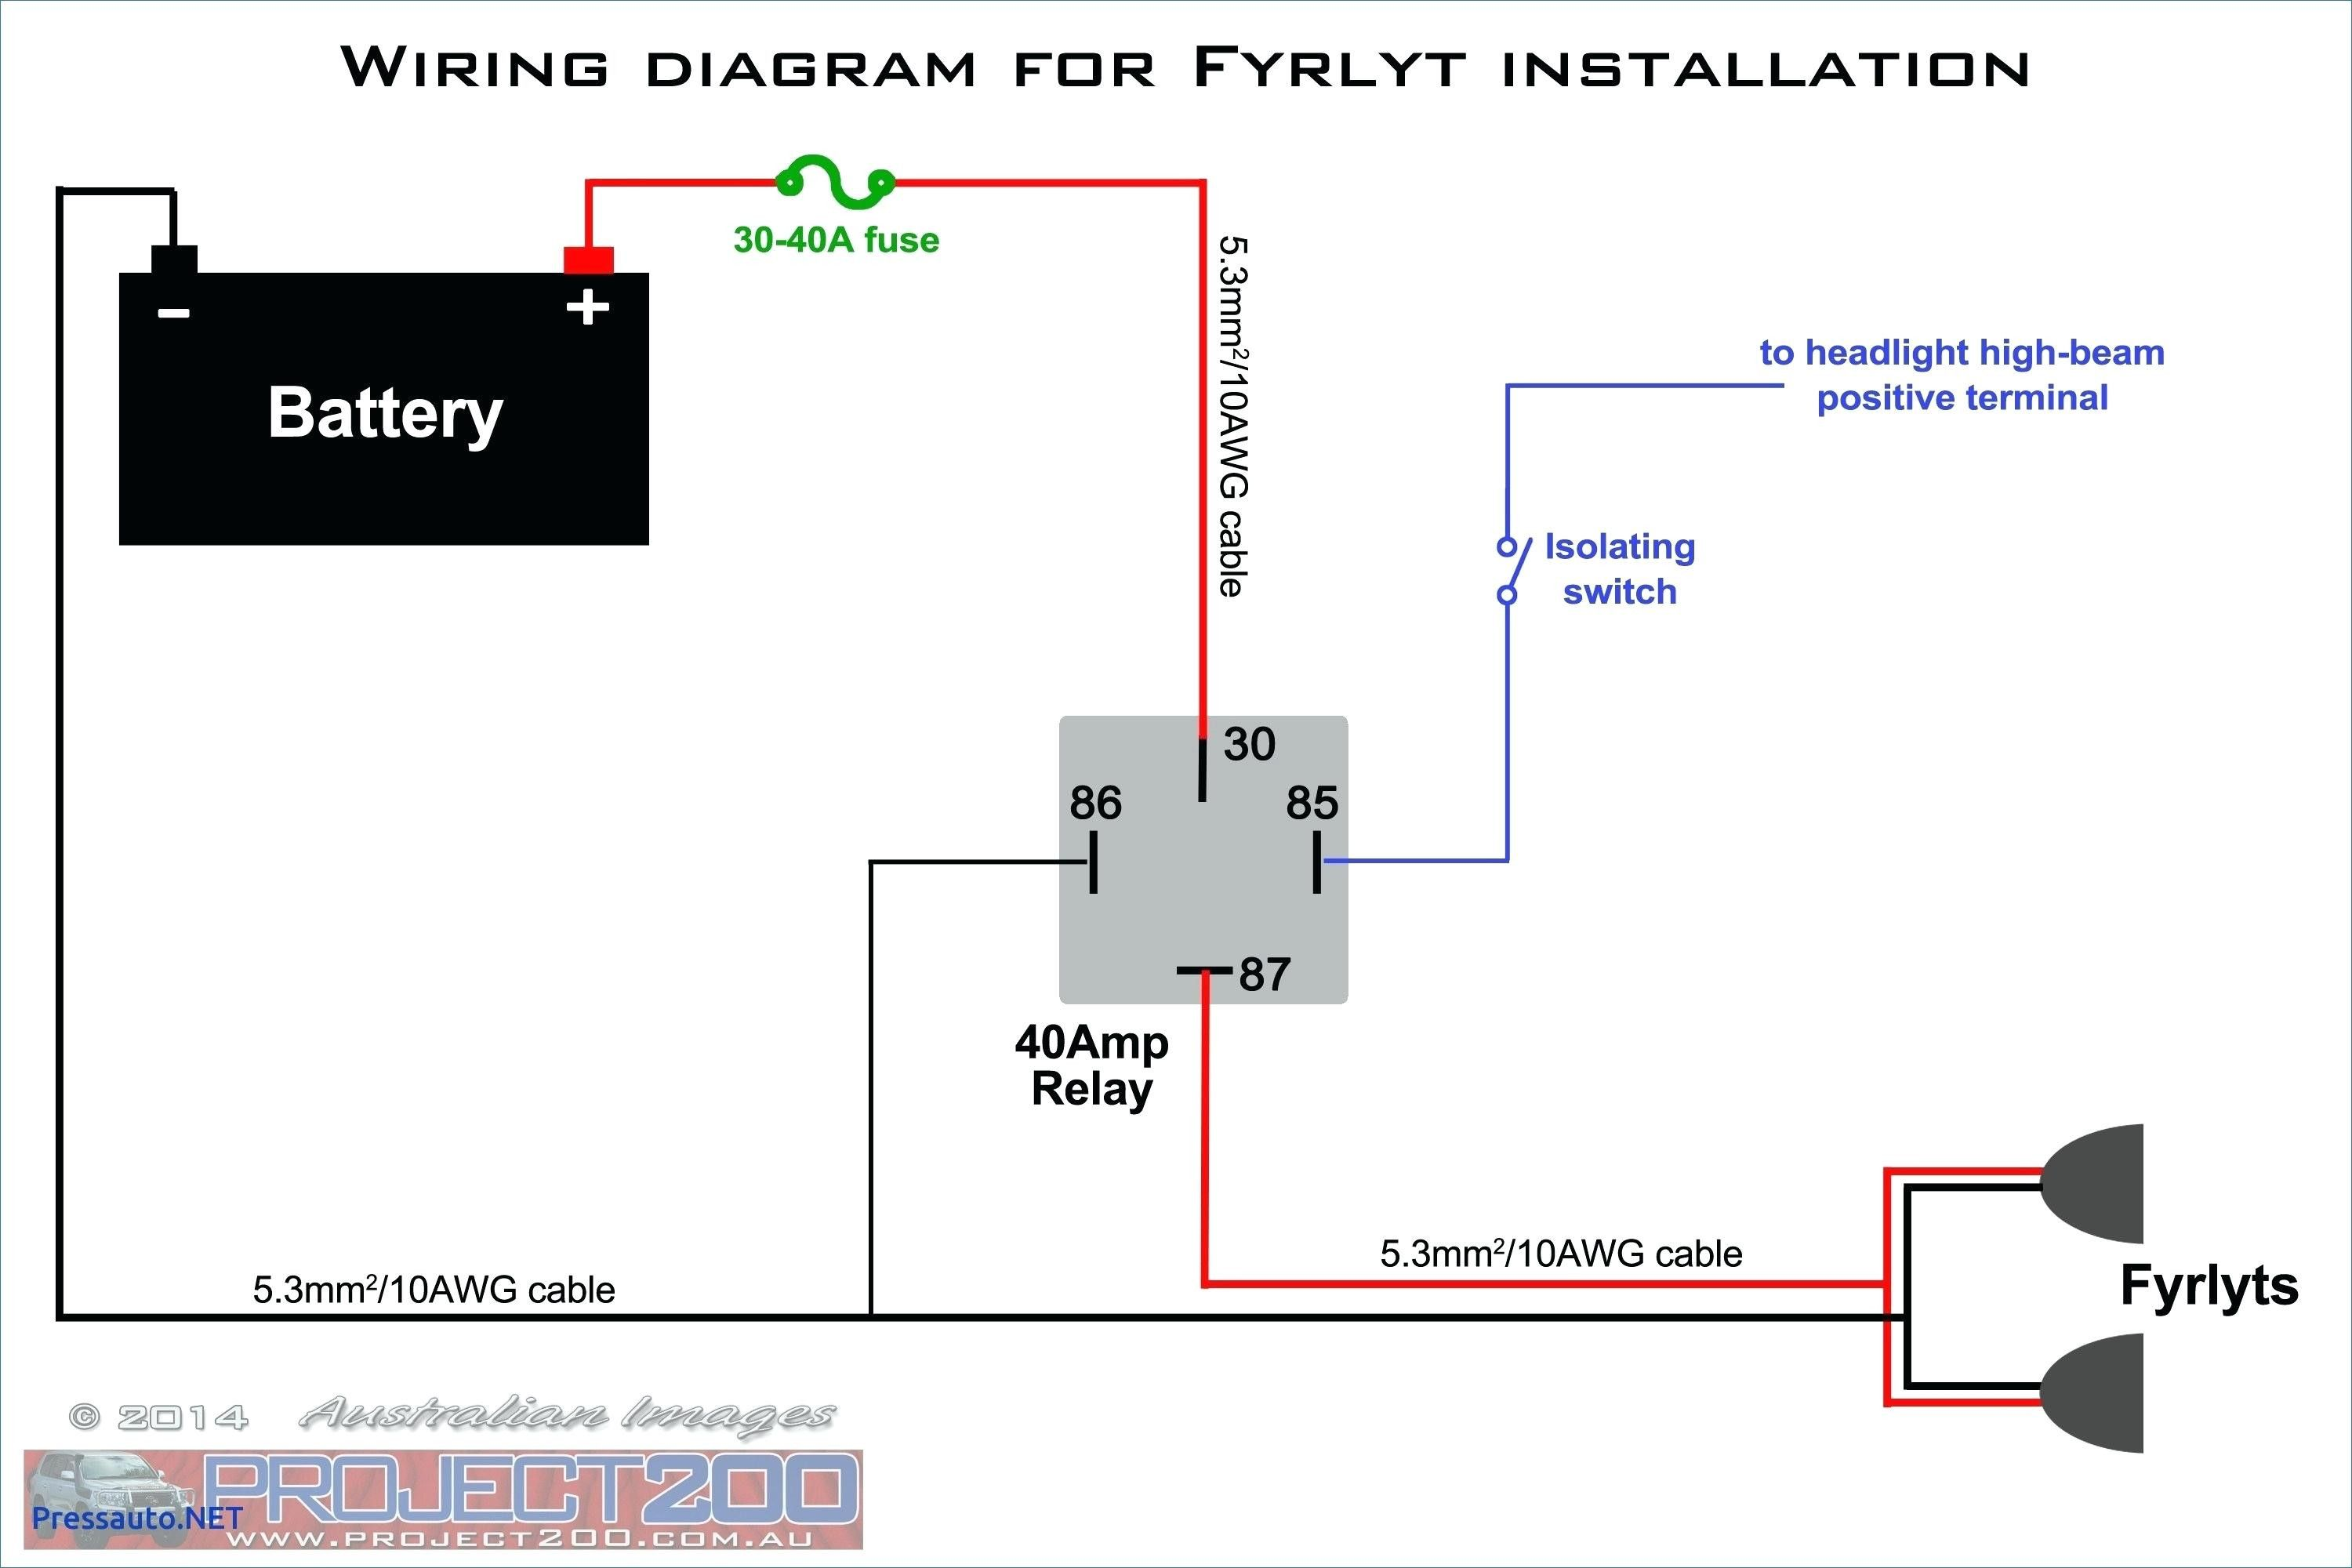 12v 5 Pin Relay Wiring Diagram Driving Lights How To Wire Of Kc At ... |  Electrical circuit diagram, Electrical wiring diagram, DiagramPinterest